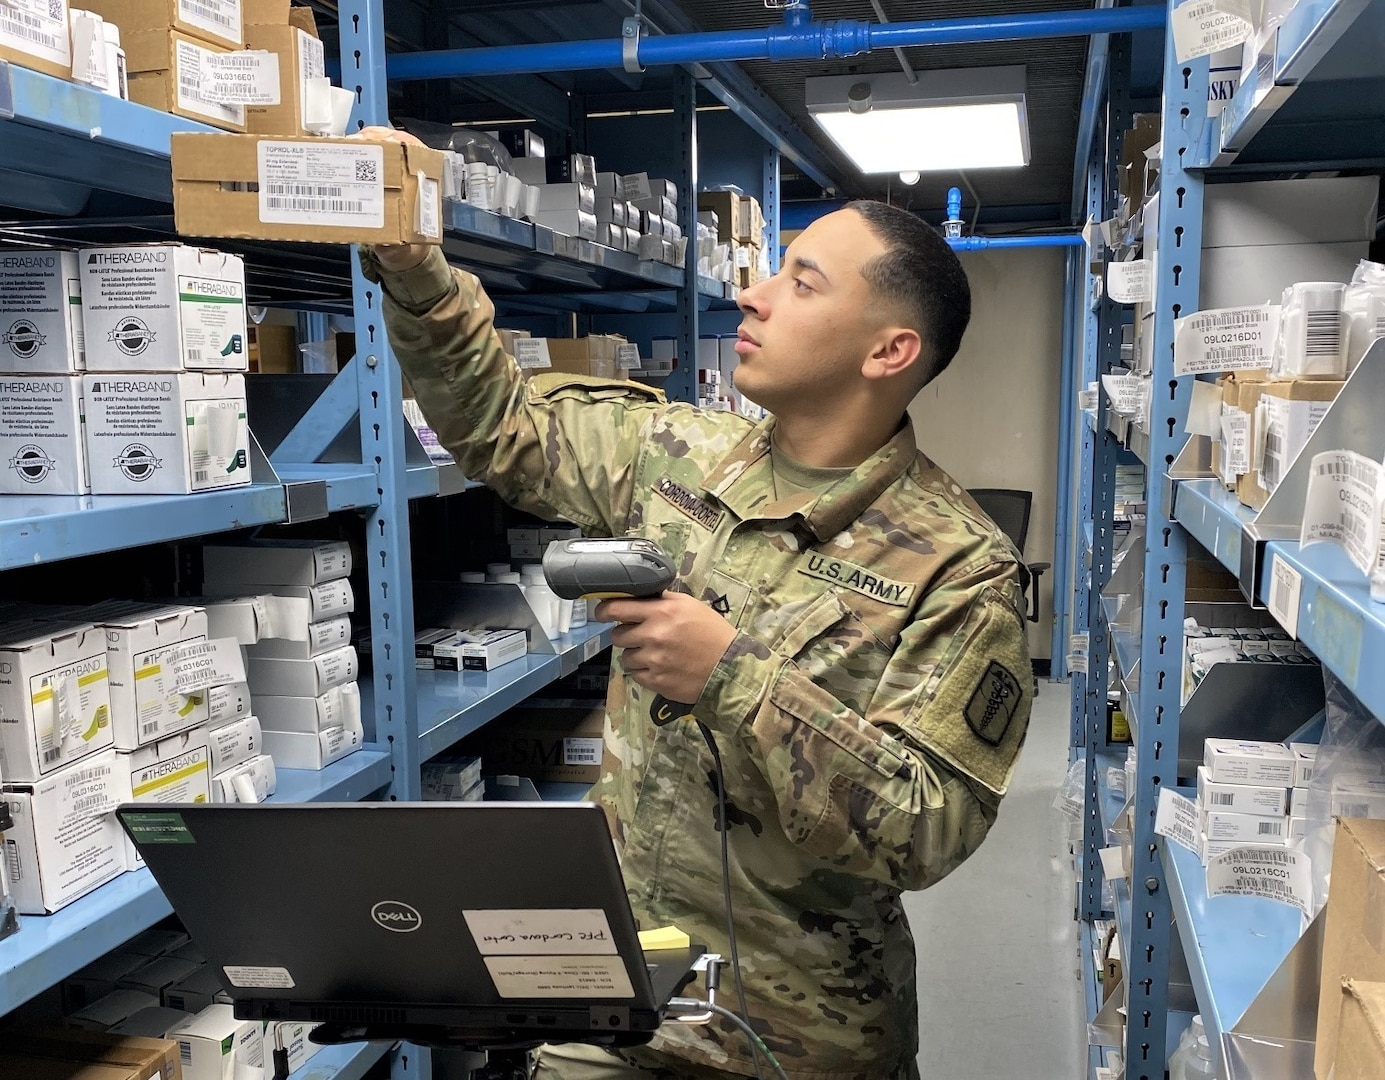 Pfc. Raul Cordova performs duties as a storage materiel handler at the U.S. Army Medical Materiel Center-Korea warehouse. His duties include picking of Class VIII medical supplies and transferring them over to the shipping section for shipment to customers.